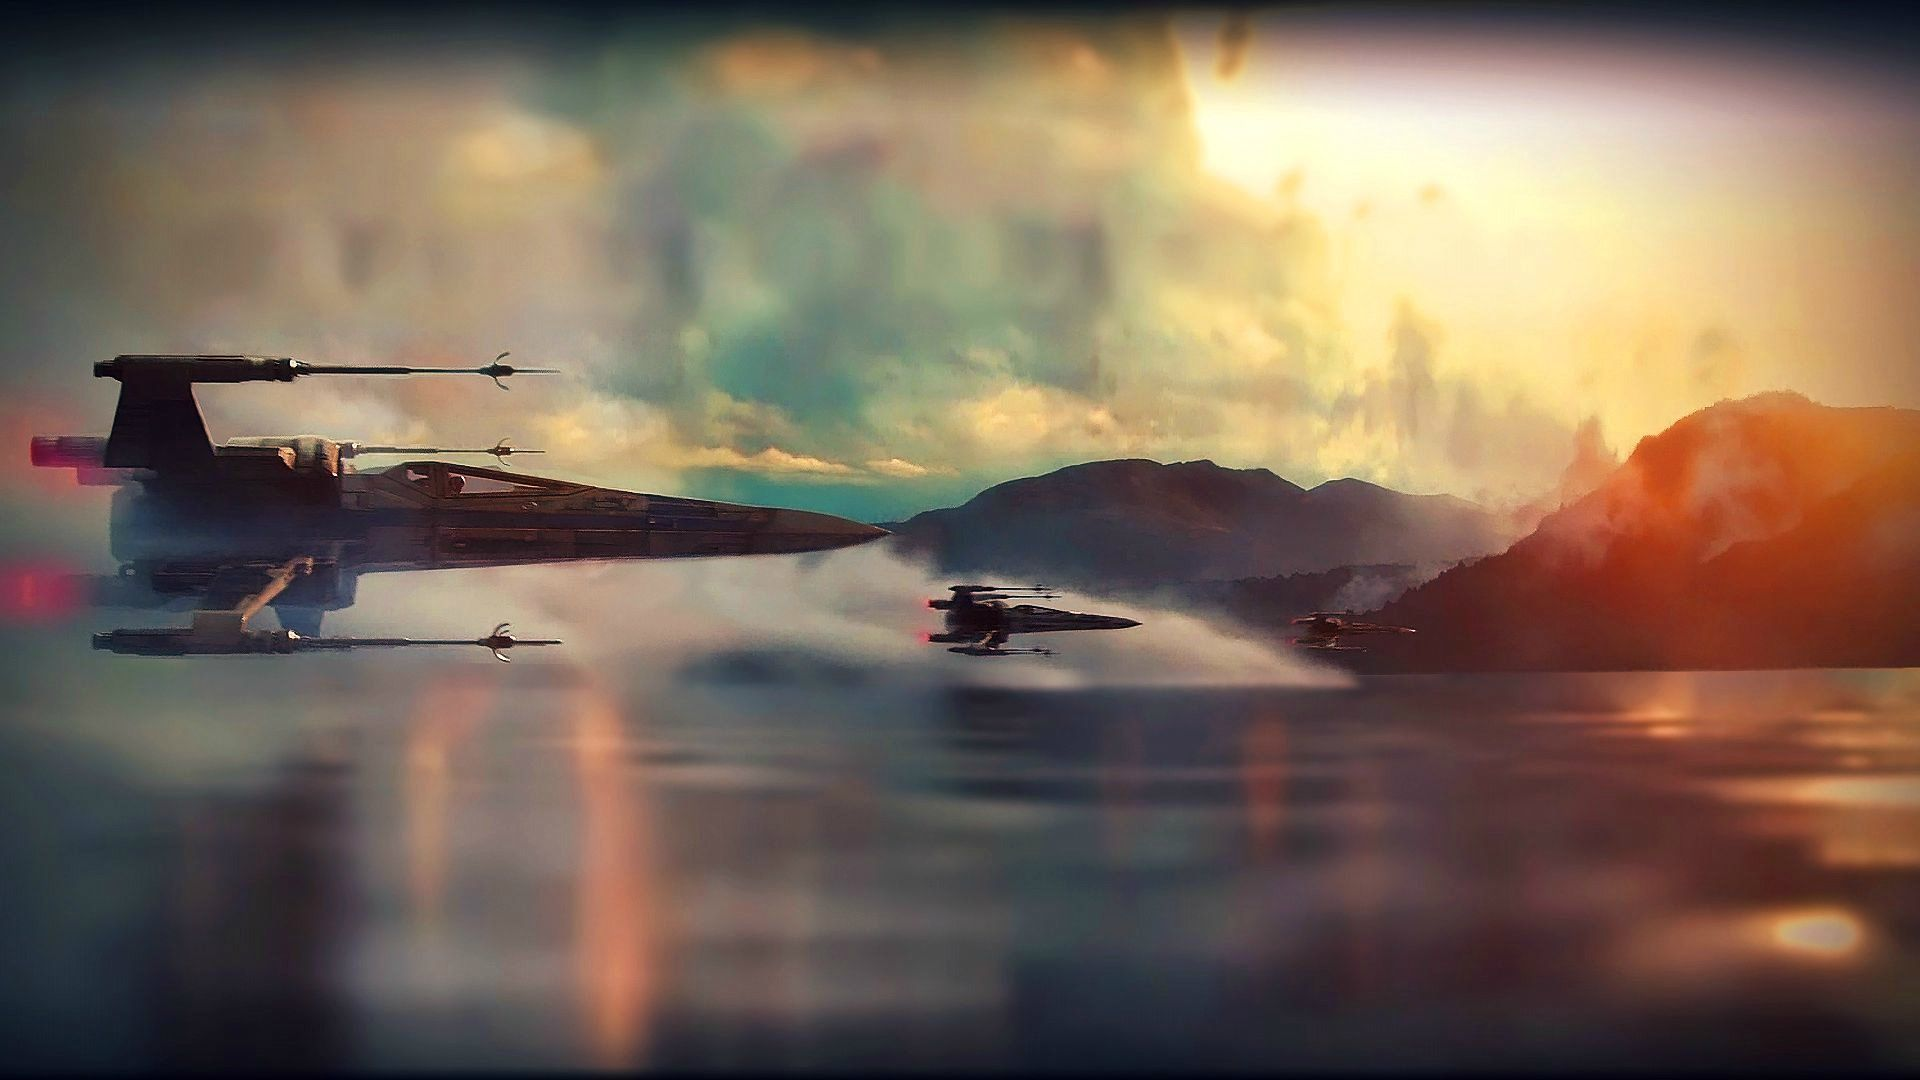 Star Wars The Force Awakens Wallpapers Top Free Star Wars